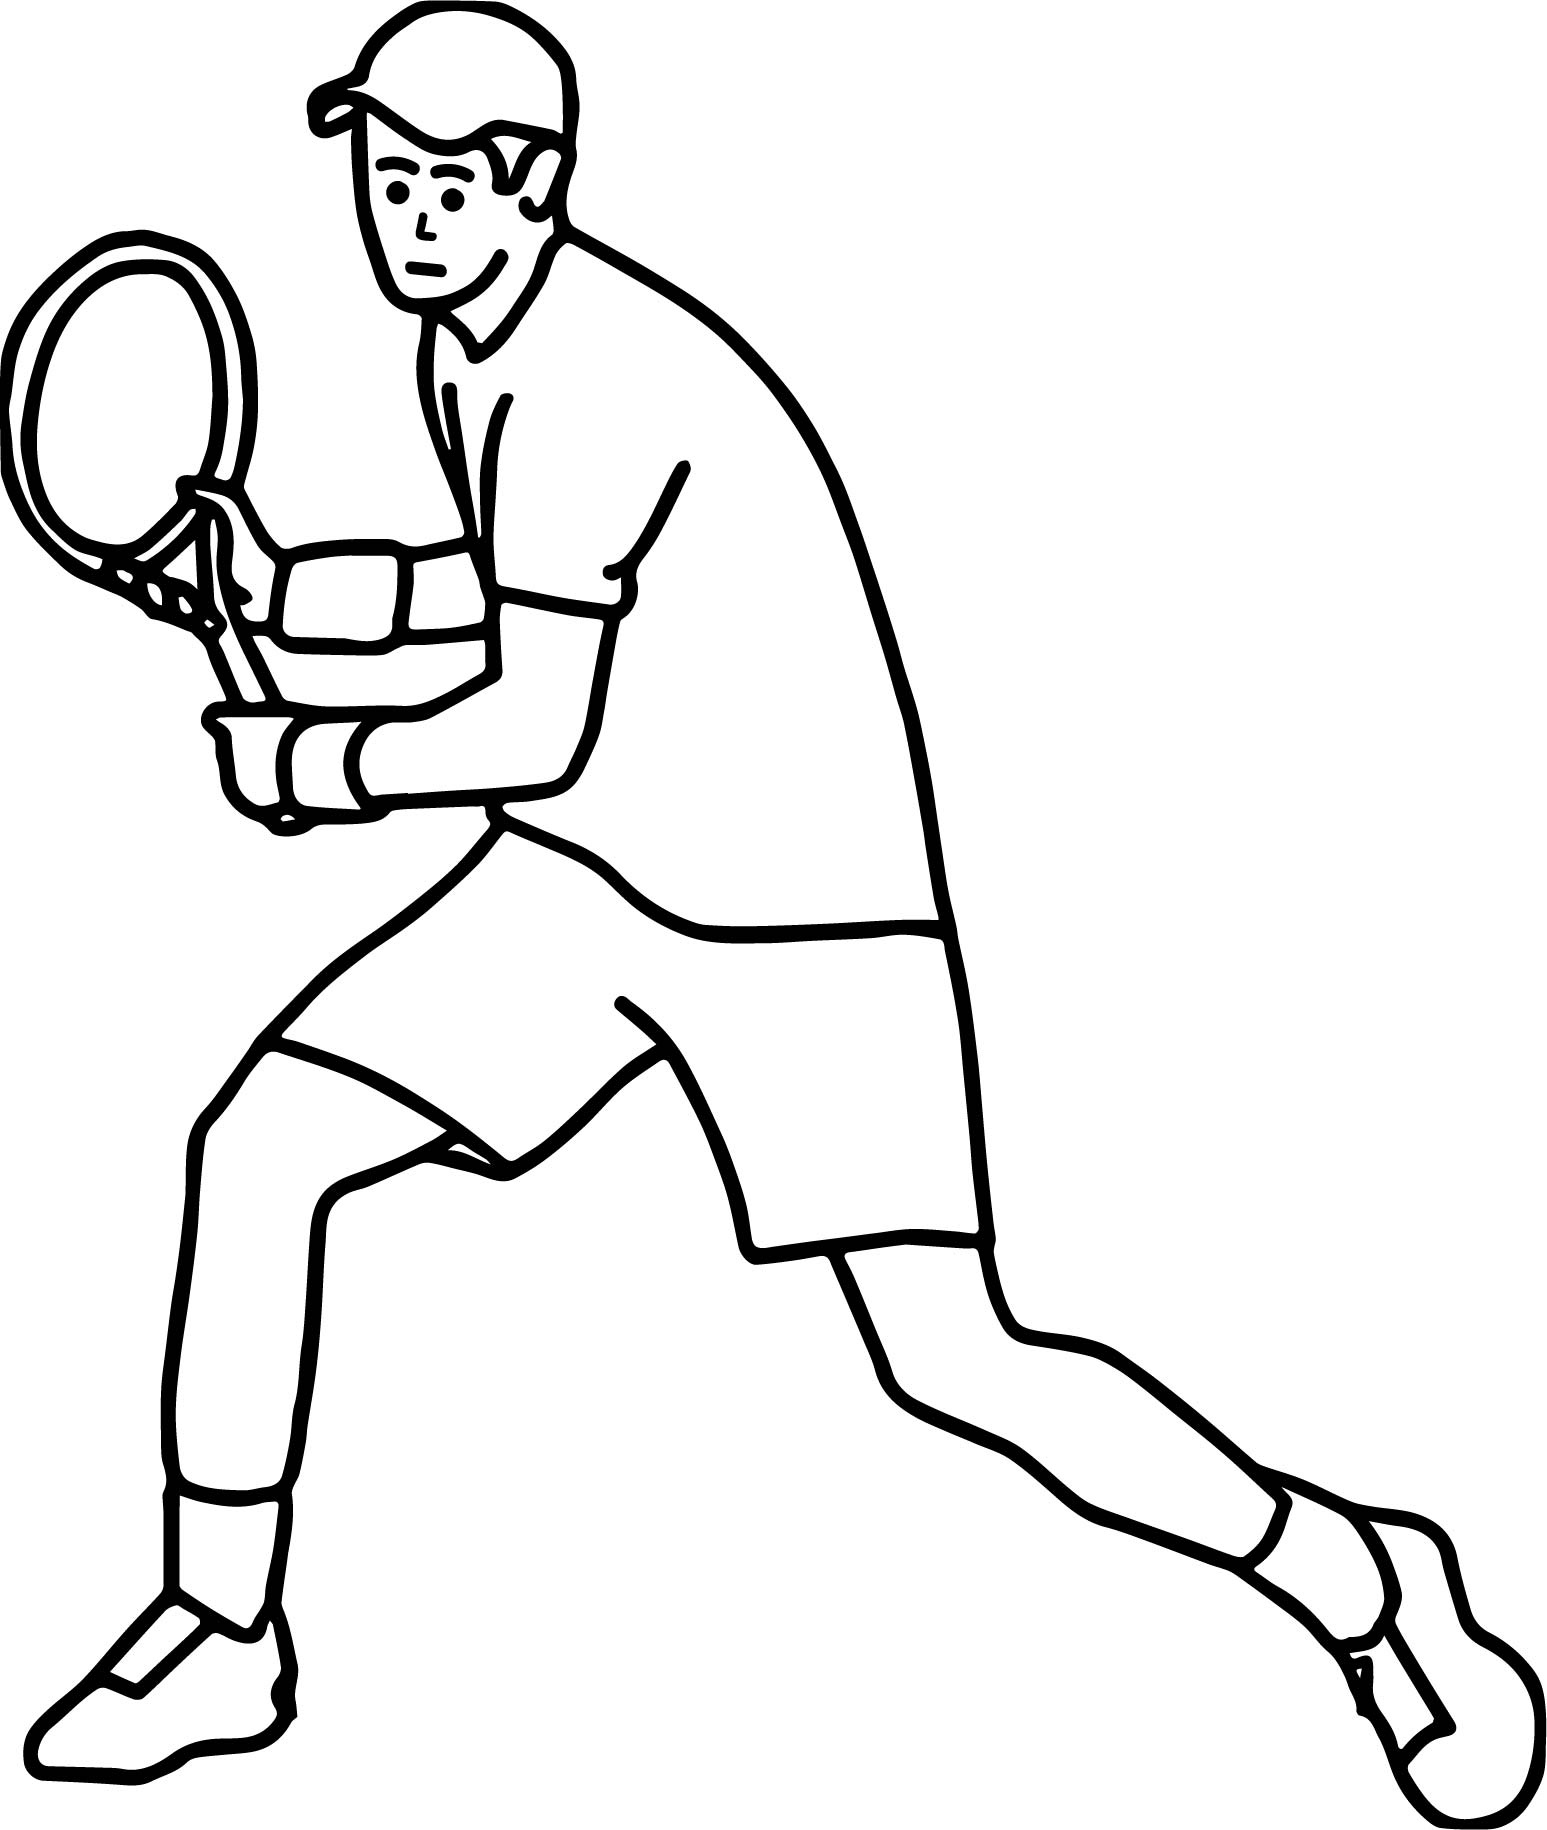 Man Playing Tennis Coloring Page